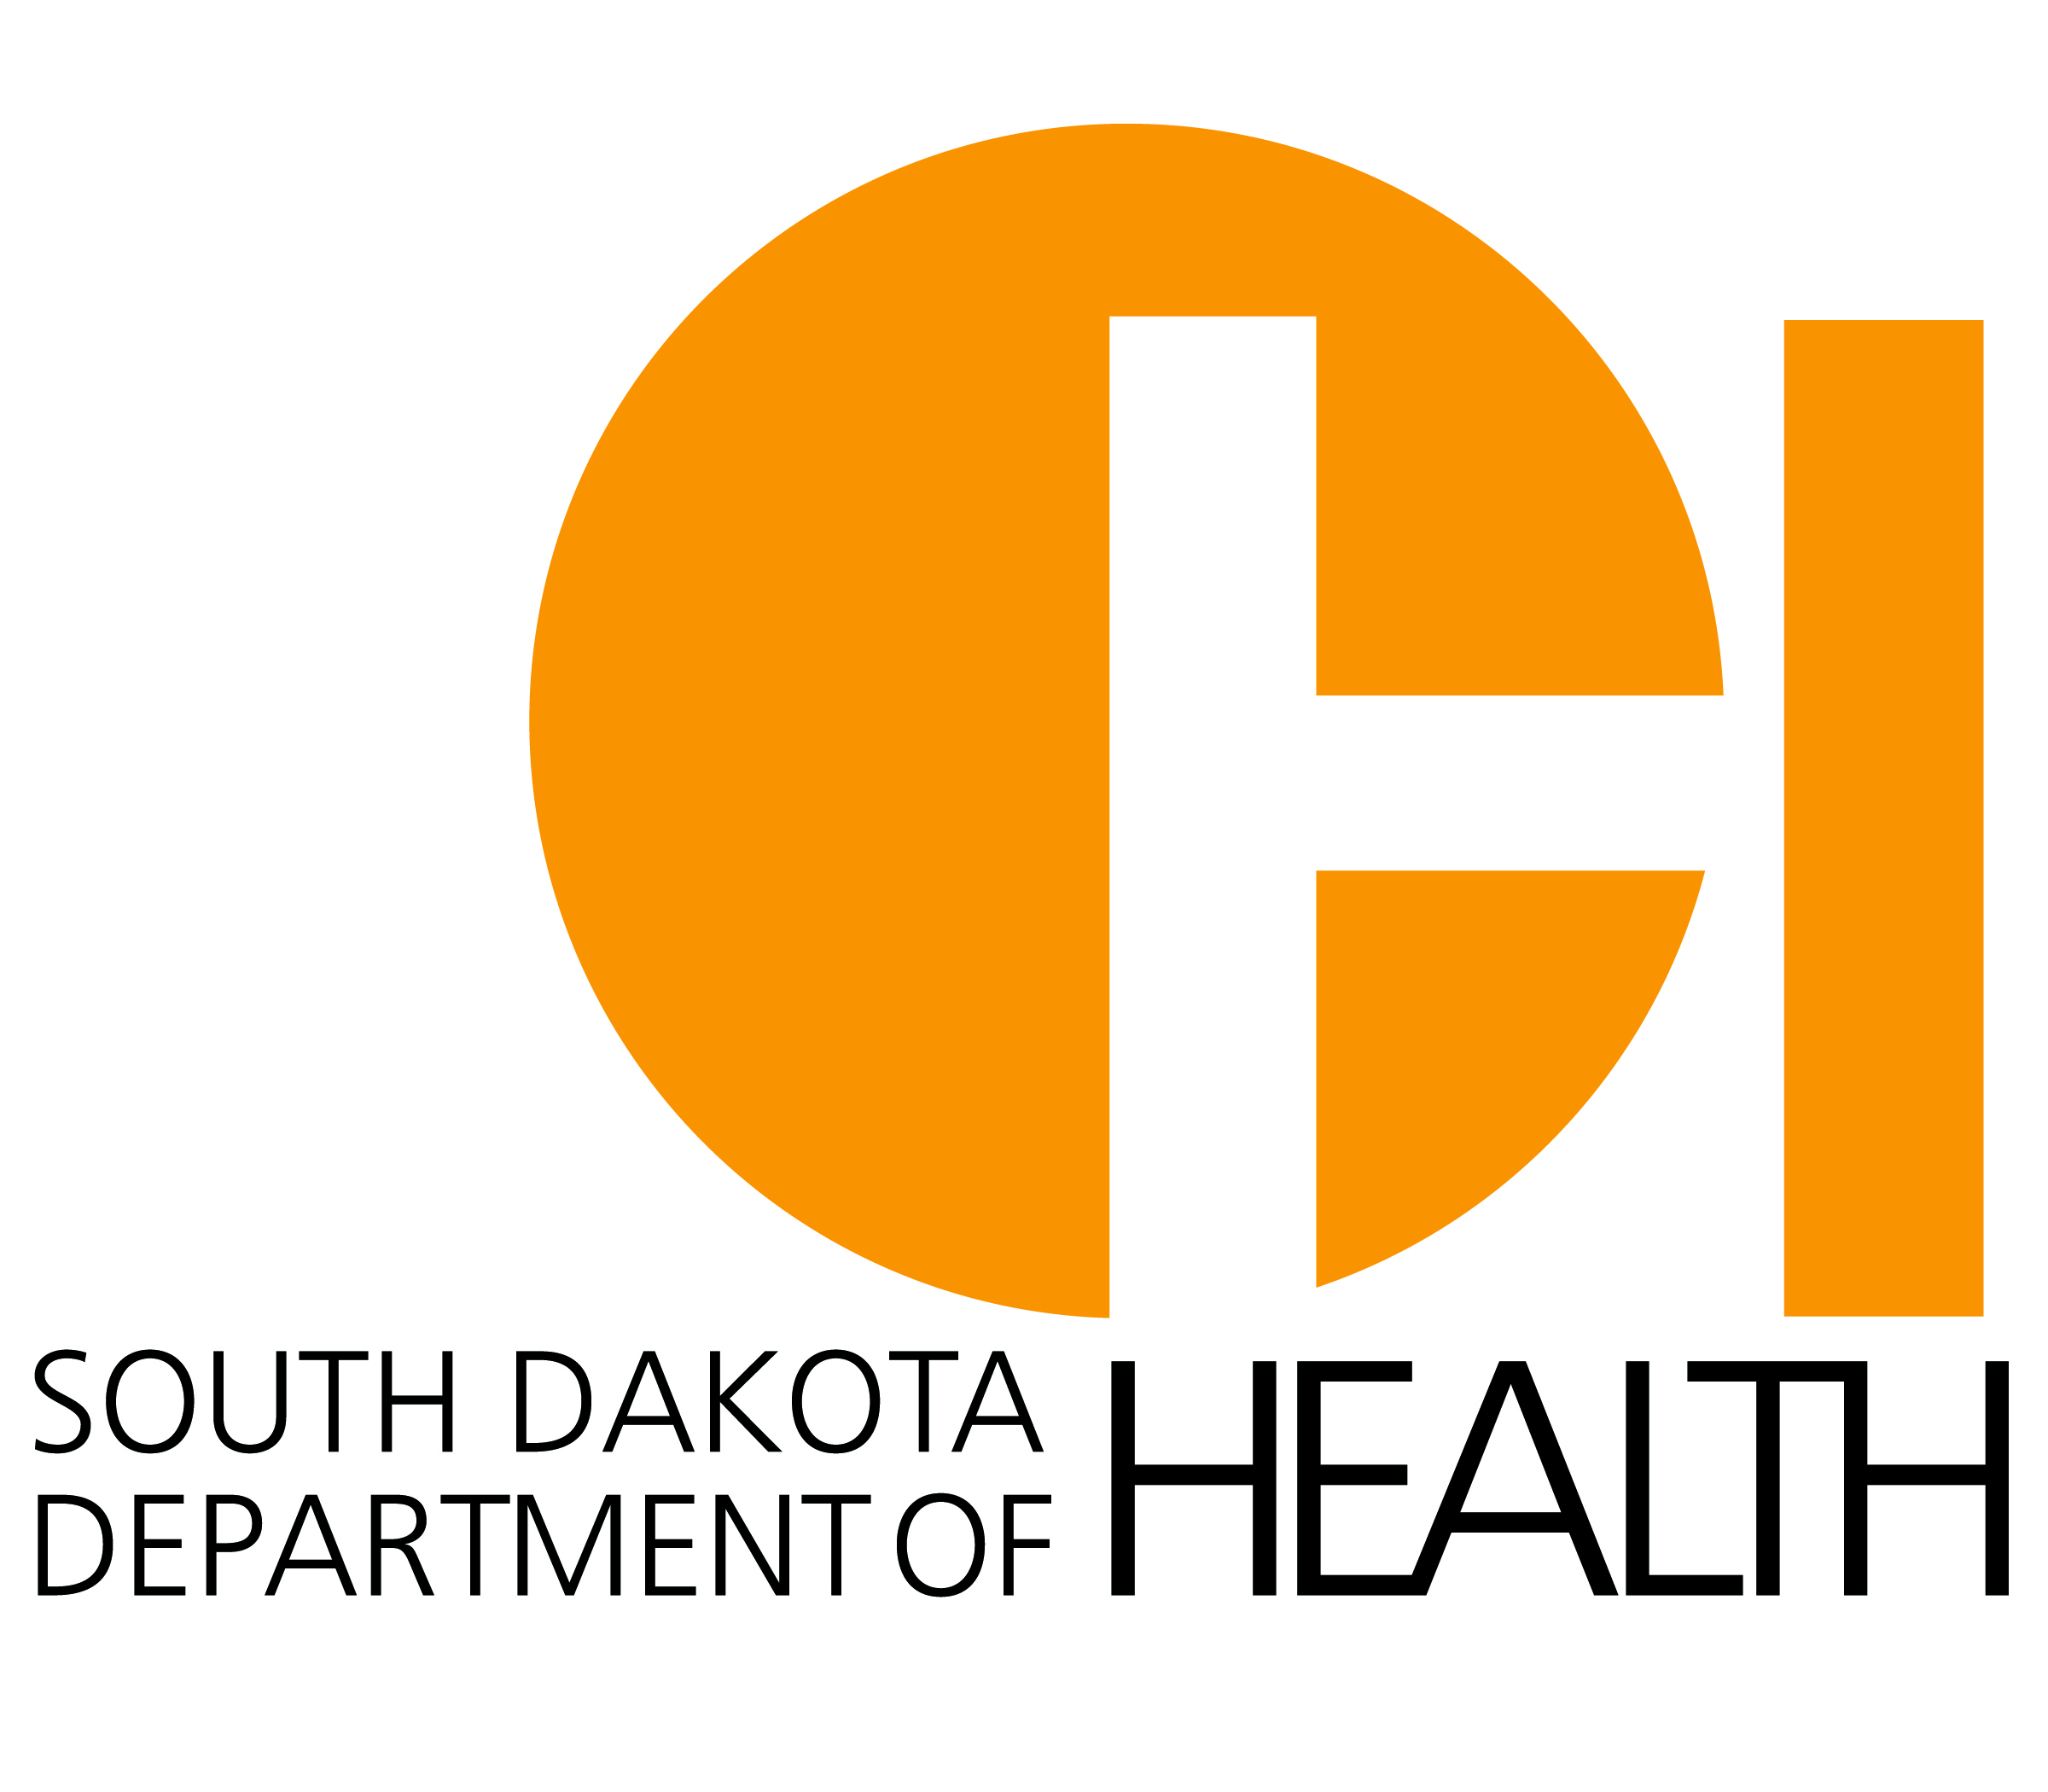 South Dakota Department of Public Health